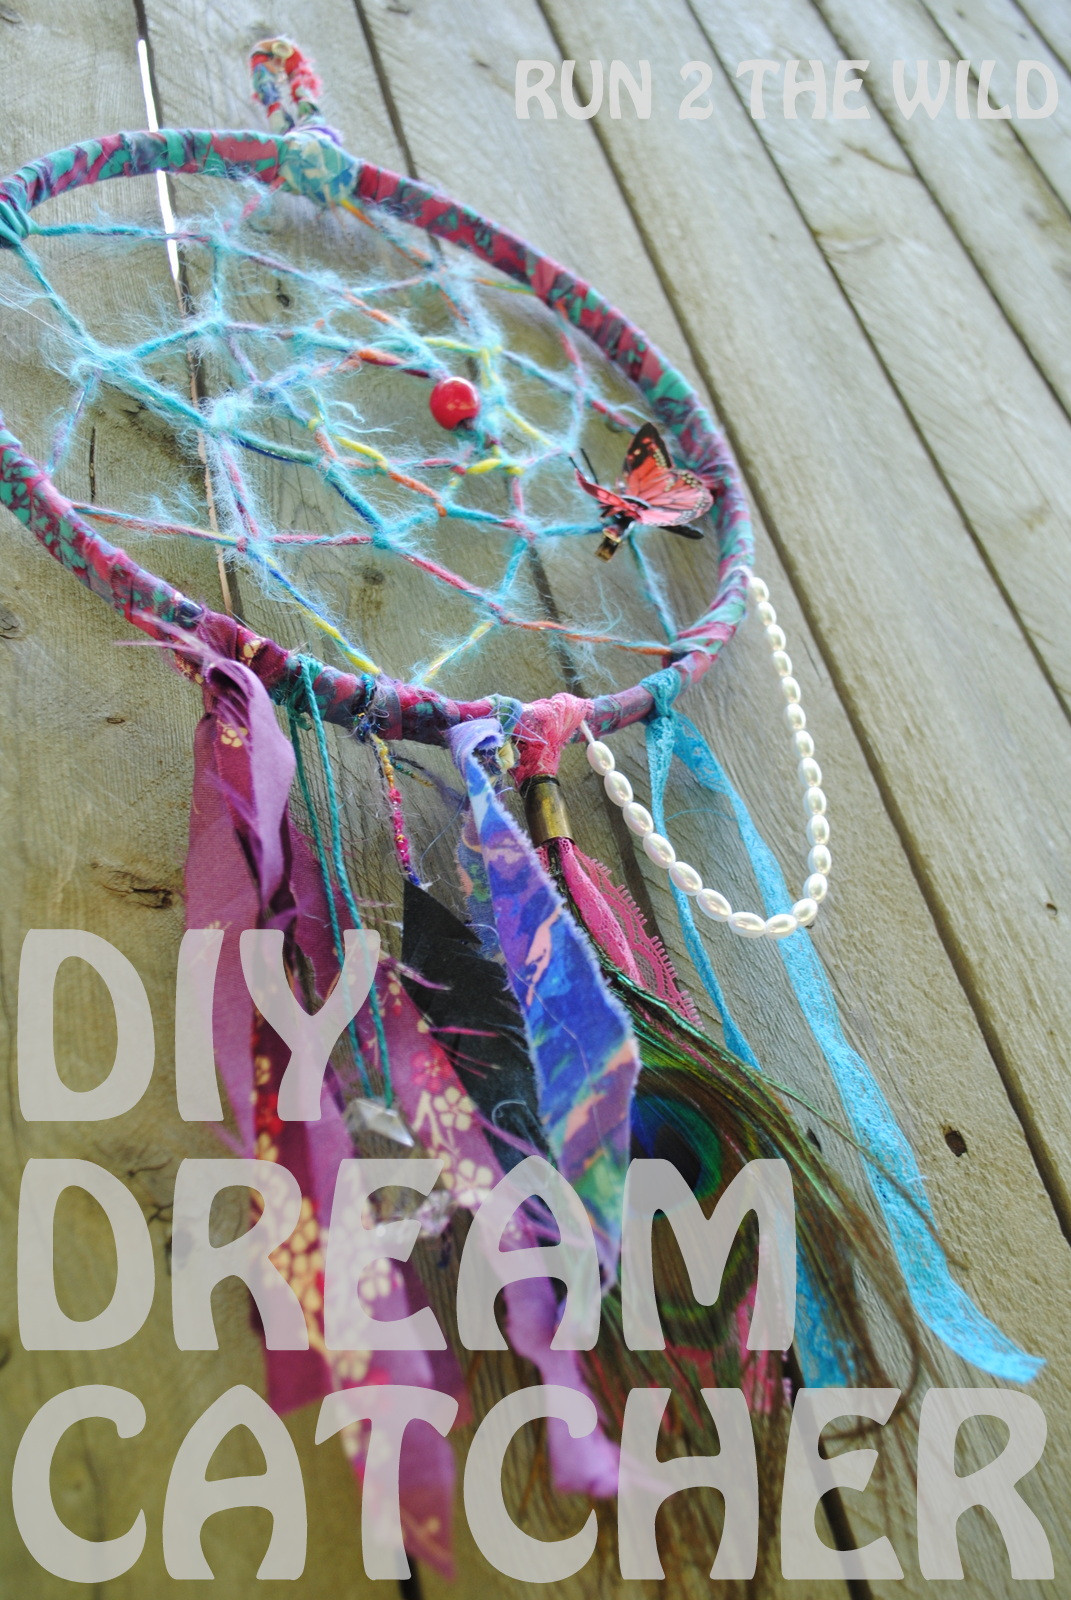 Best ideas about DIY Dream Catchers . Save or Pin Run 2 the Wild DIY TUESDAY DREAM CATCHER Now.